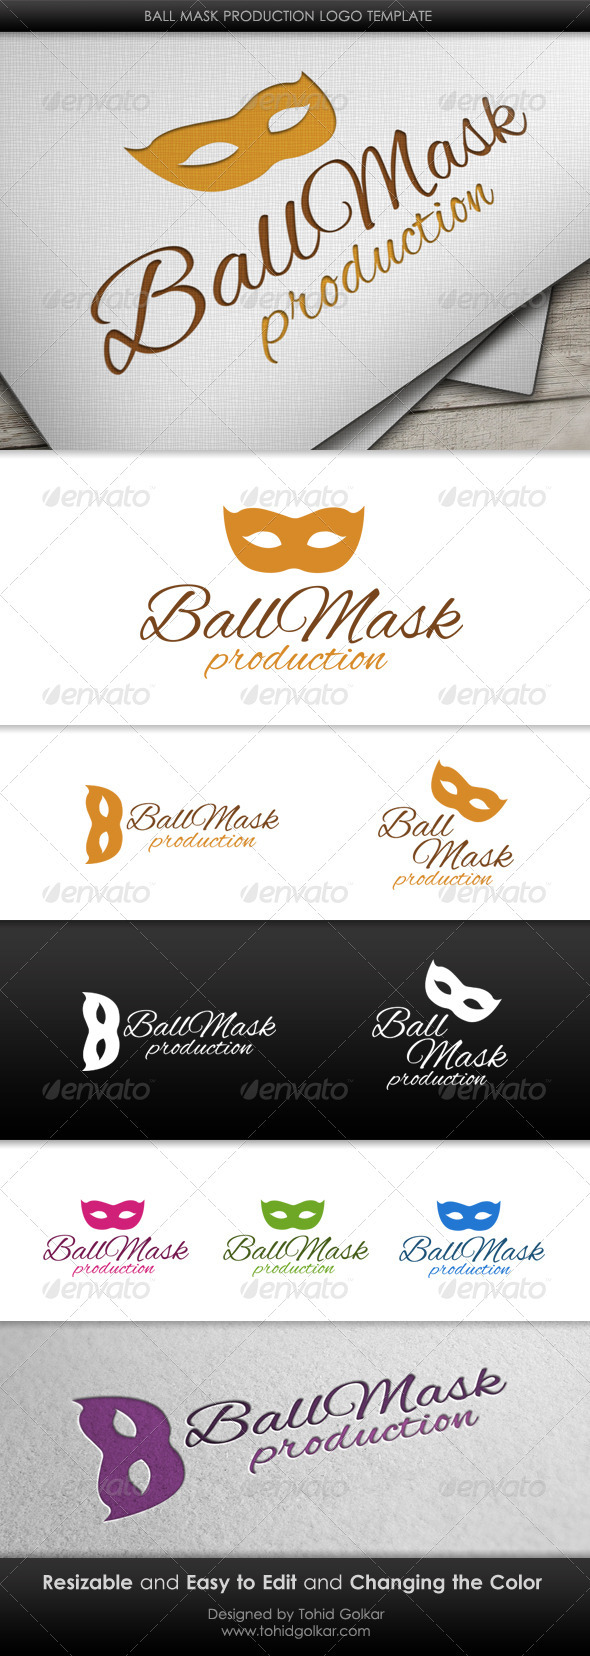 Ball Mask Production Logo Template